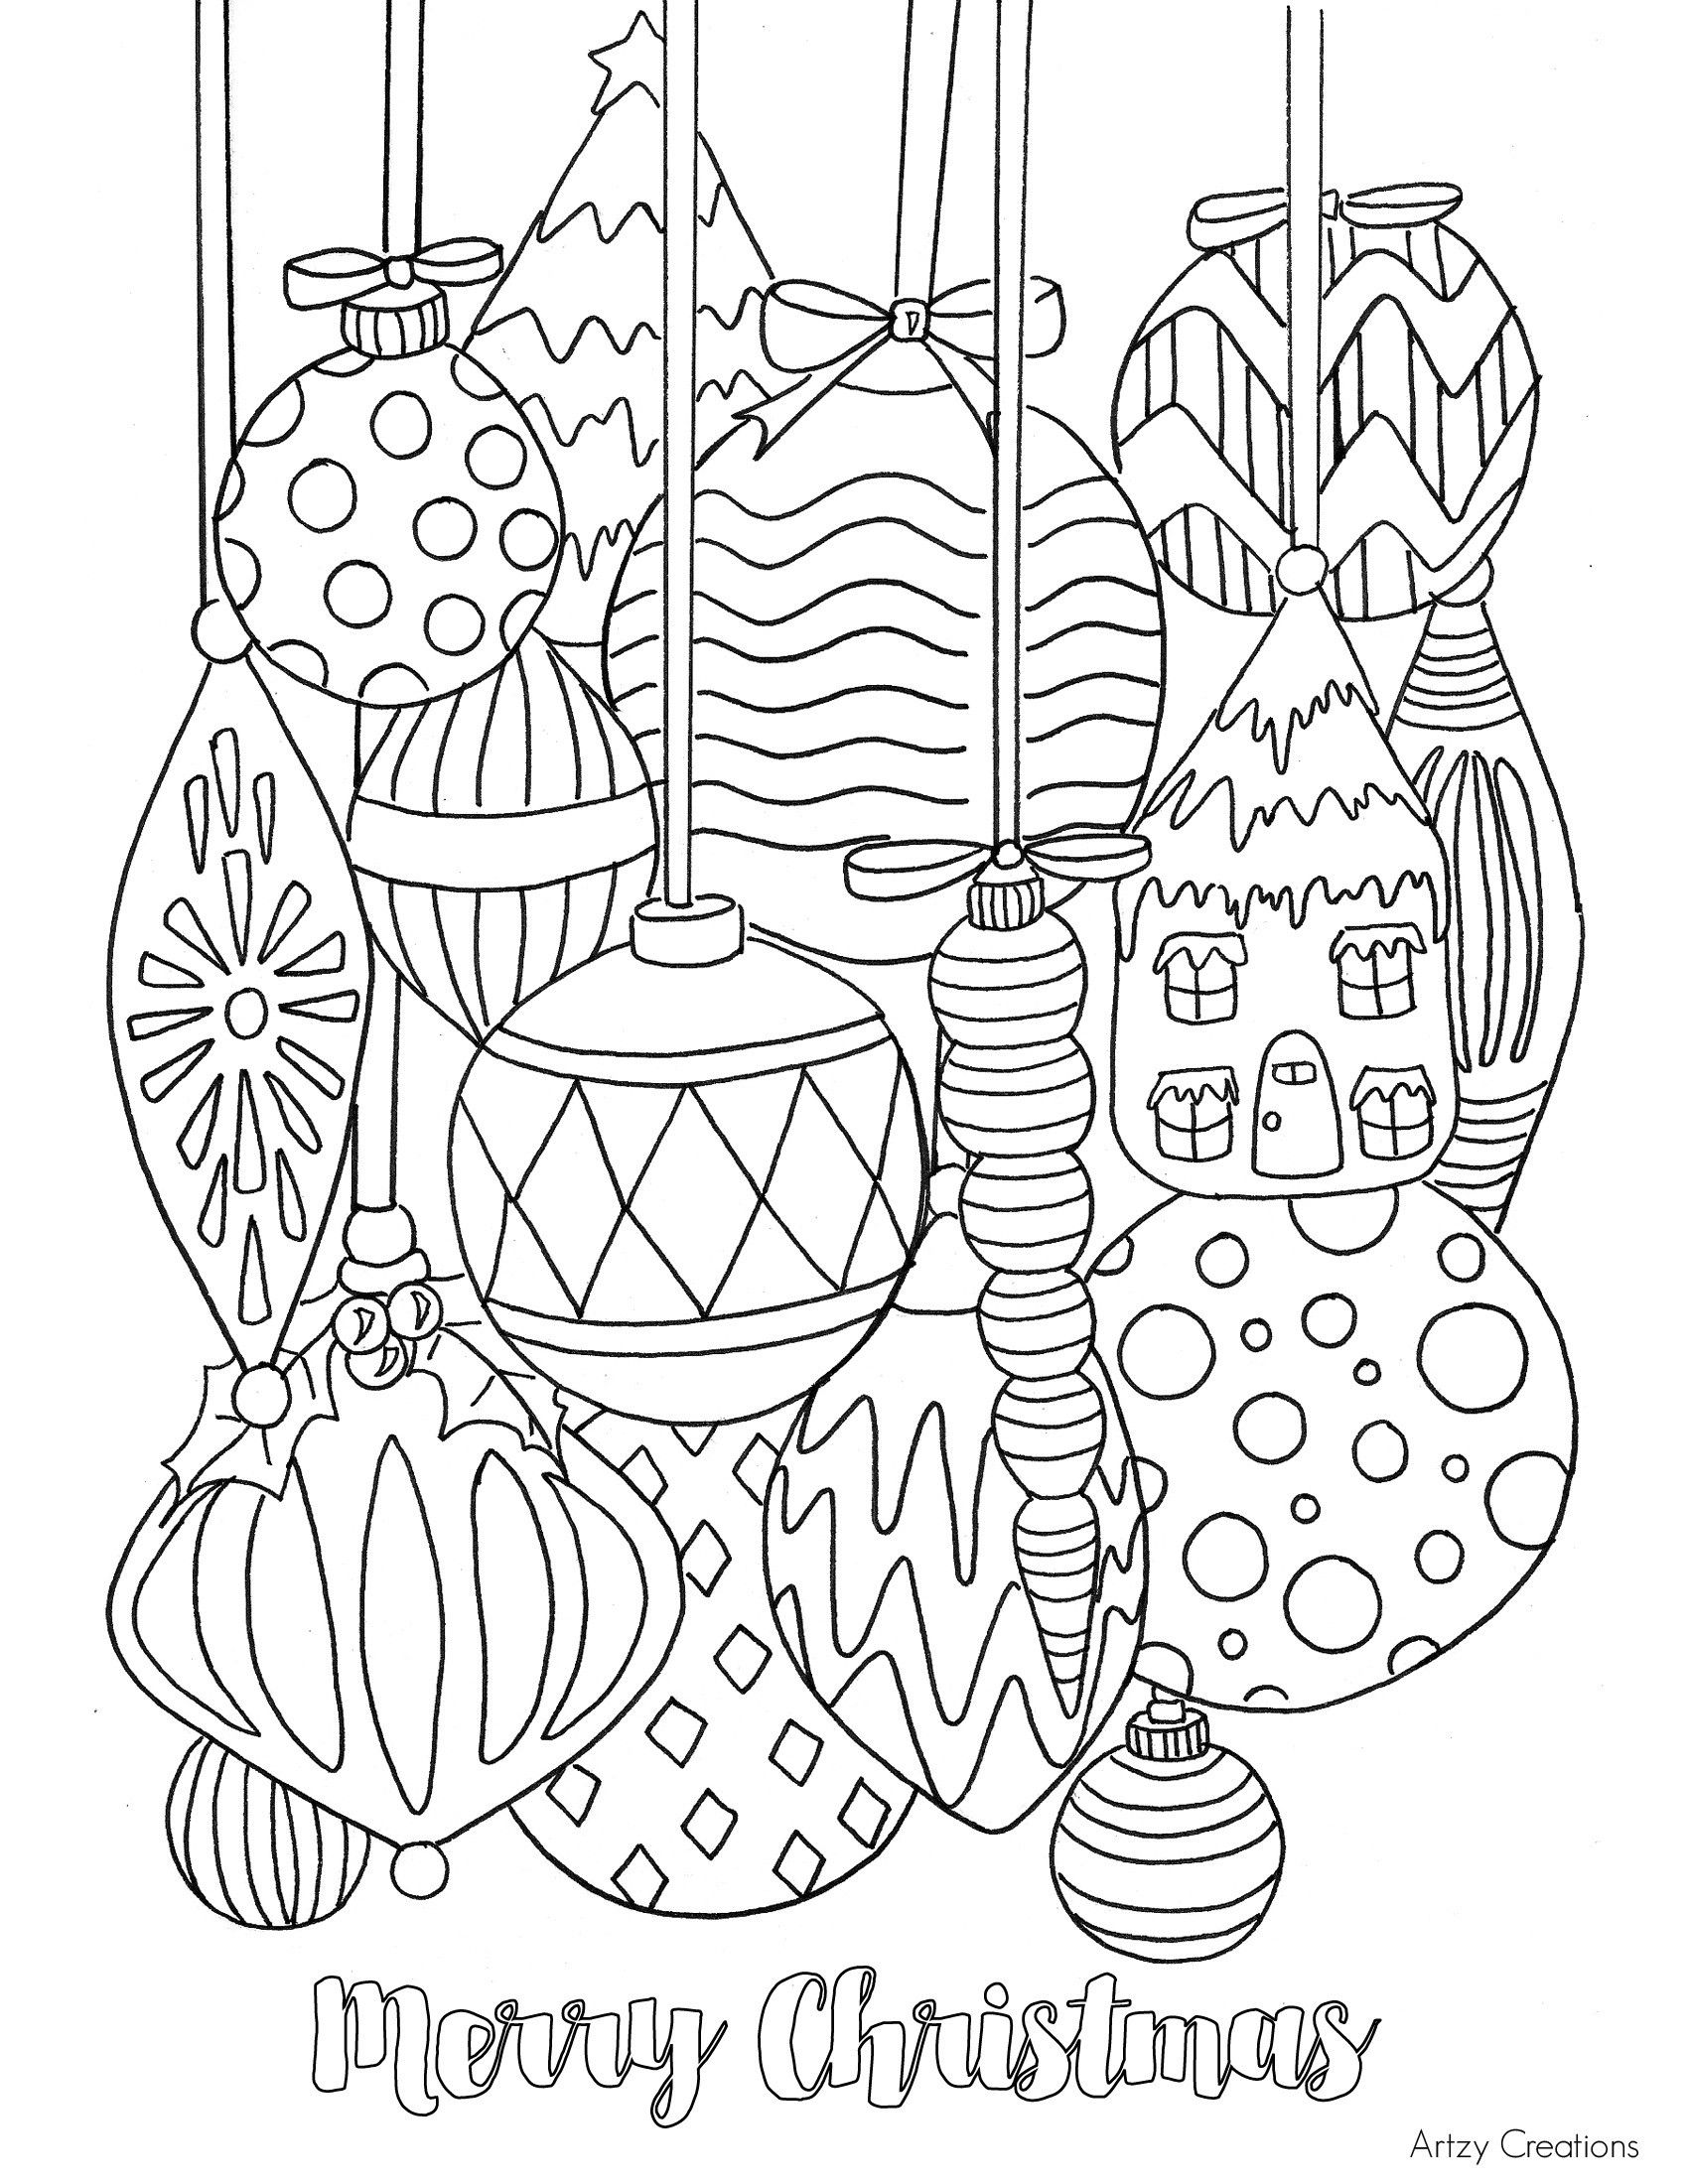 Printable Christmas Coloring Pages For Adults Christmas Coloring Page Printable Christmas Coloring Pages Free Christmas Coloring Pages Christmas Coloring Pages